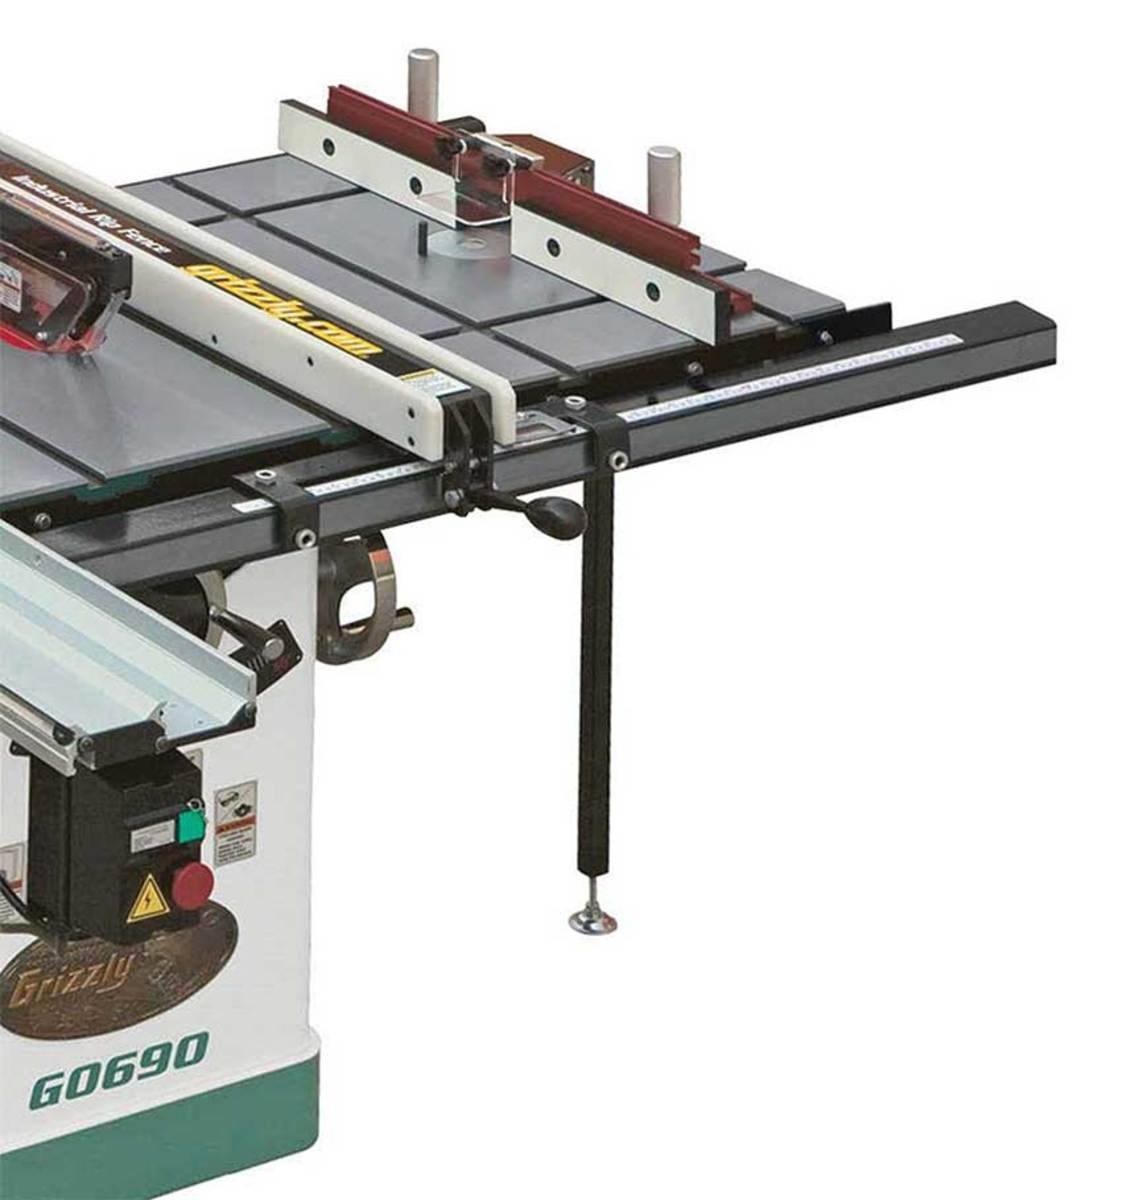 Grizzly's T10223 sliding table saw attachment.